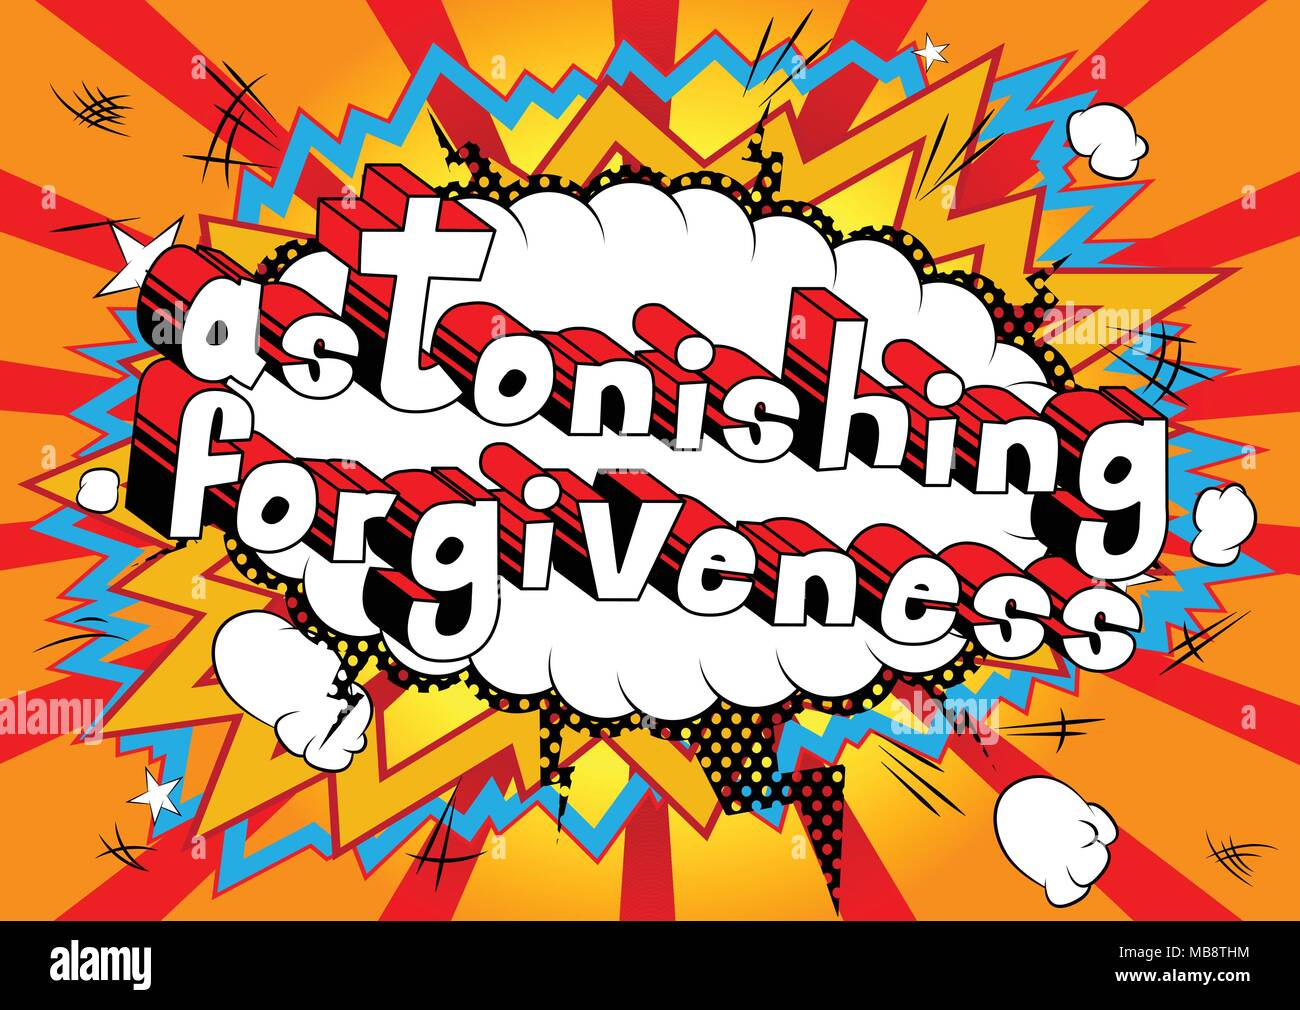 Astonishing Forgiveness - Comic book style phrase on abstract background. - Stock Image